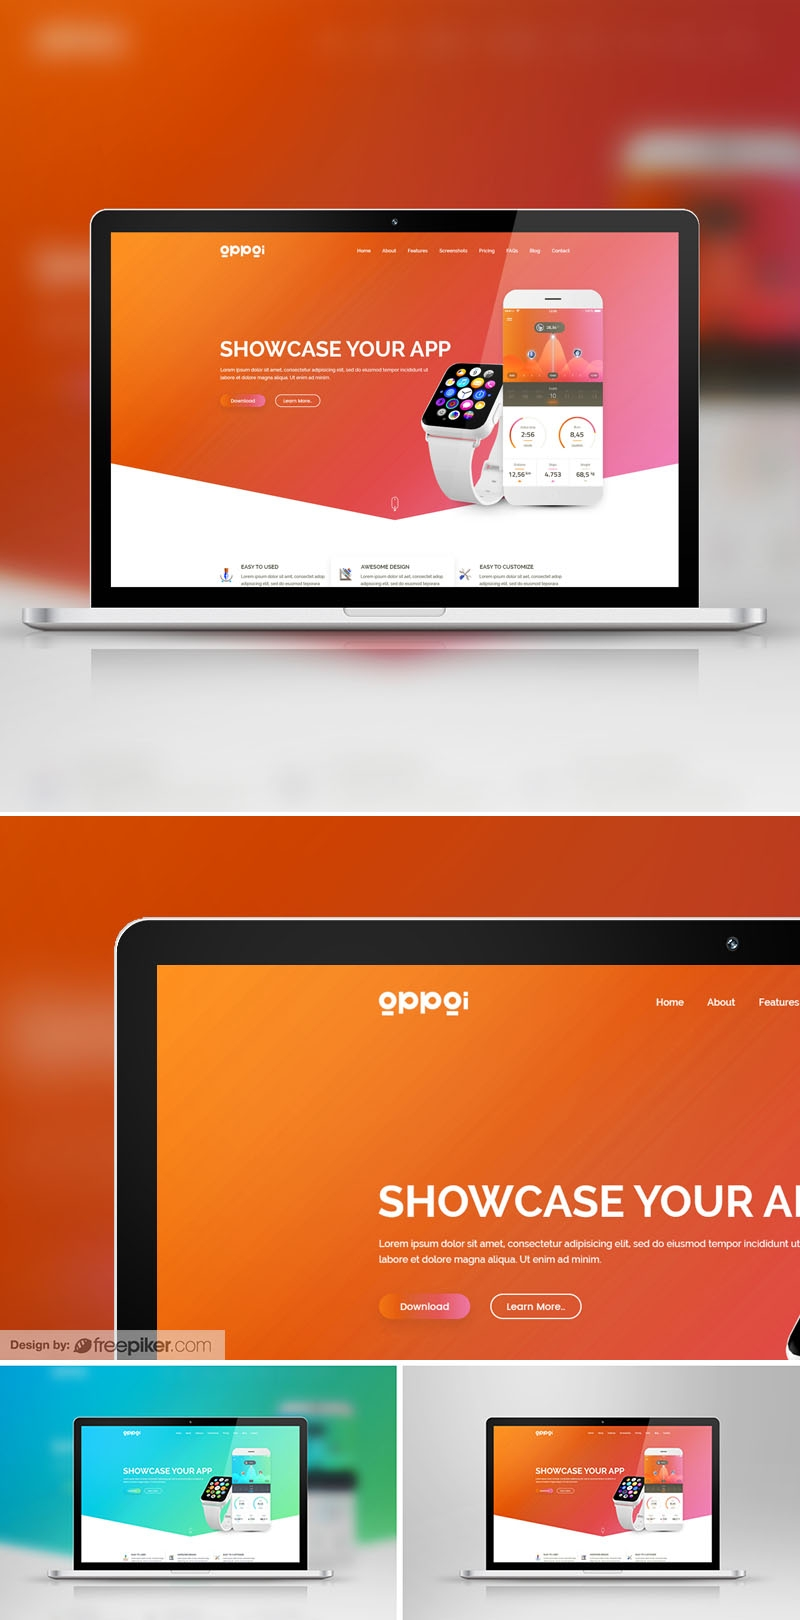 Responsive Laptop Device Screen Mockup for Web Showcase